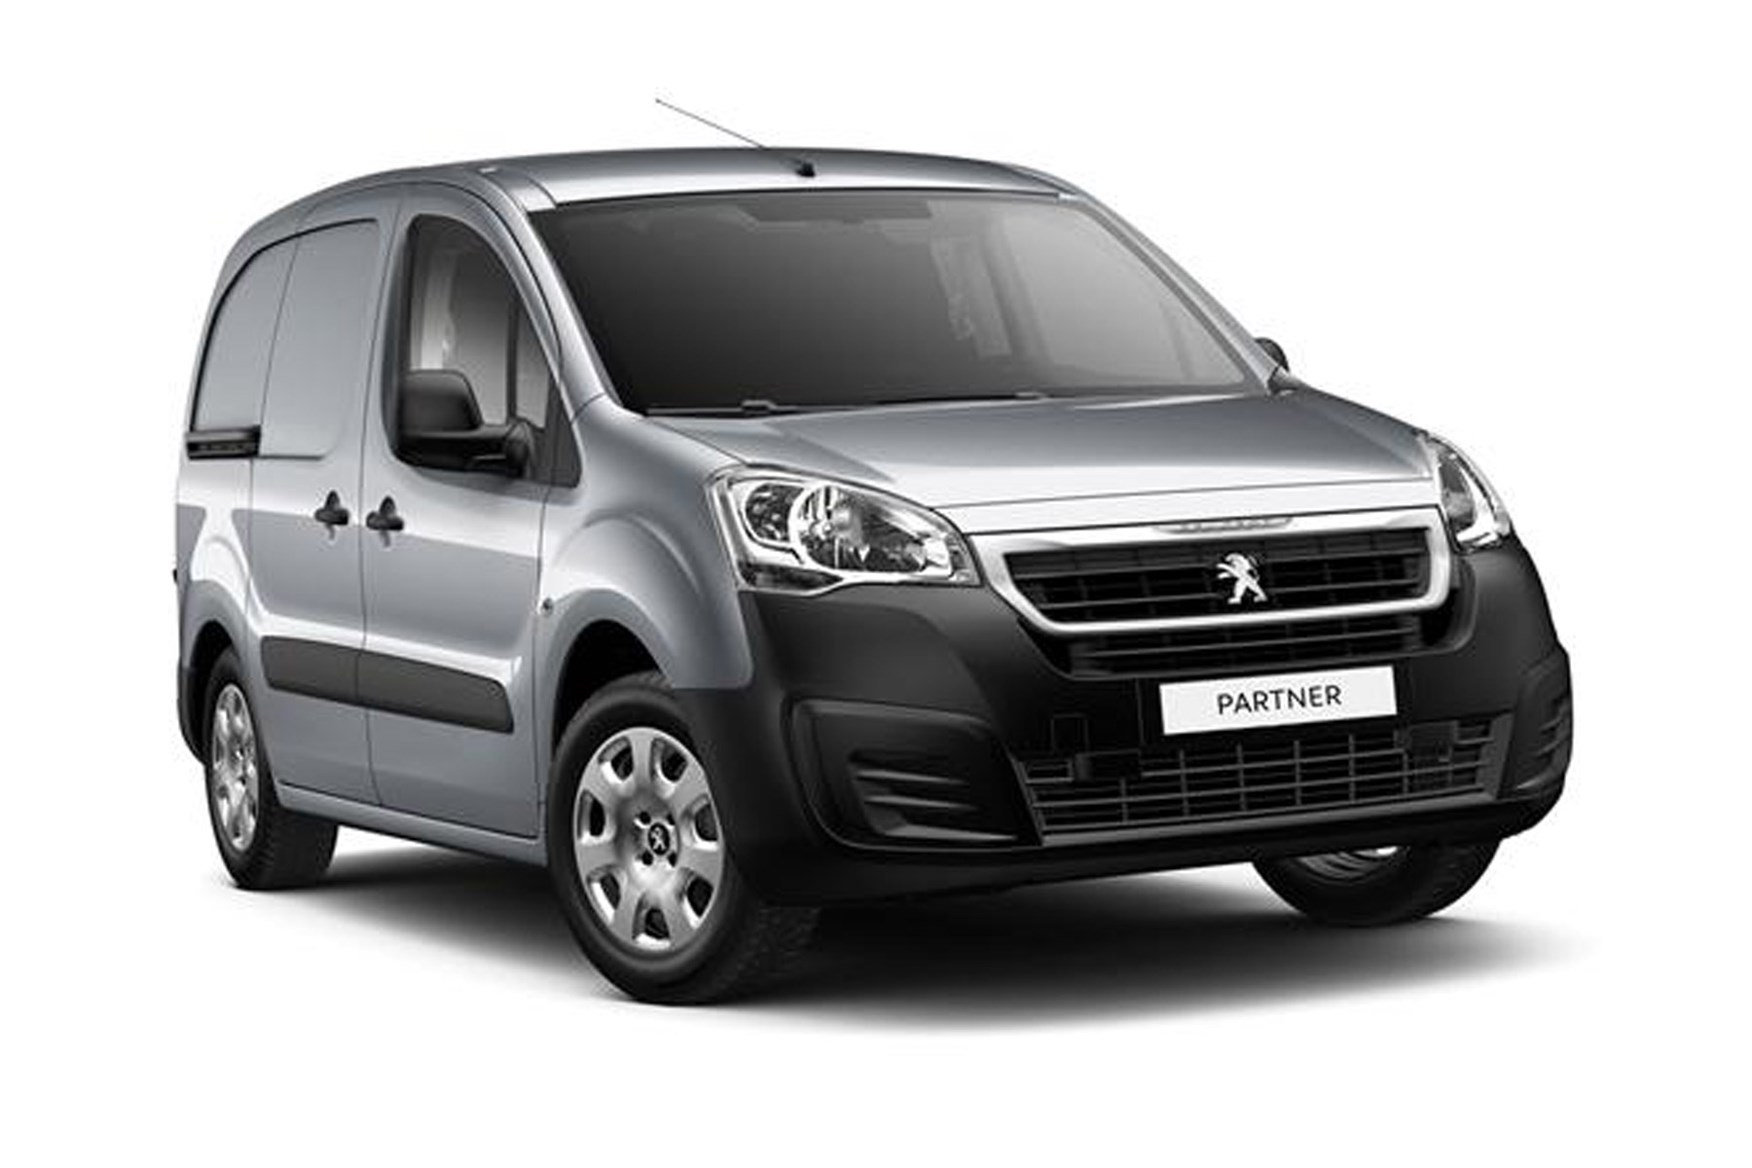 peugeot partner van review 2008 on parkers. Black Bedroom Furniture Sets. Home Design Ideas